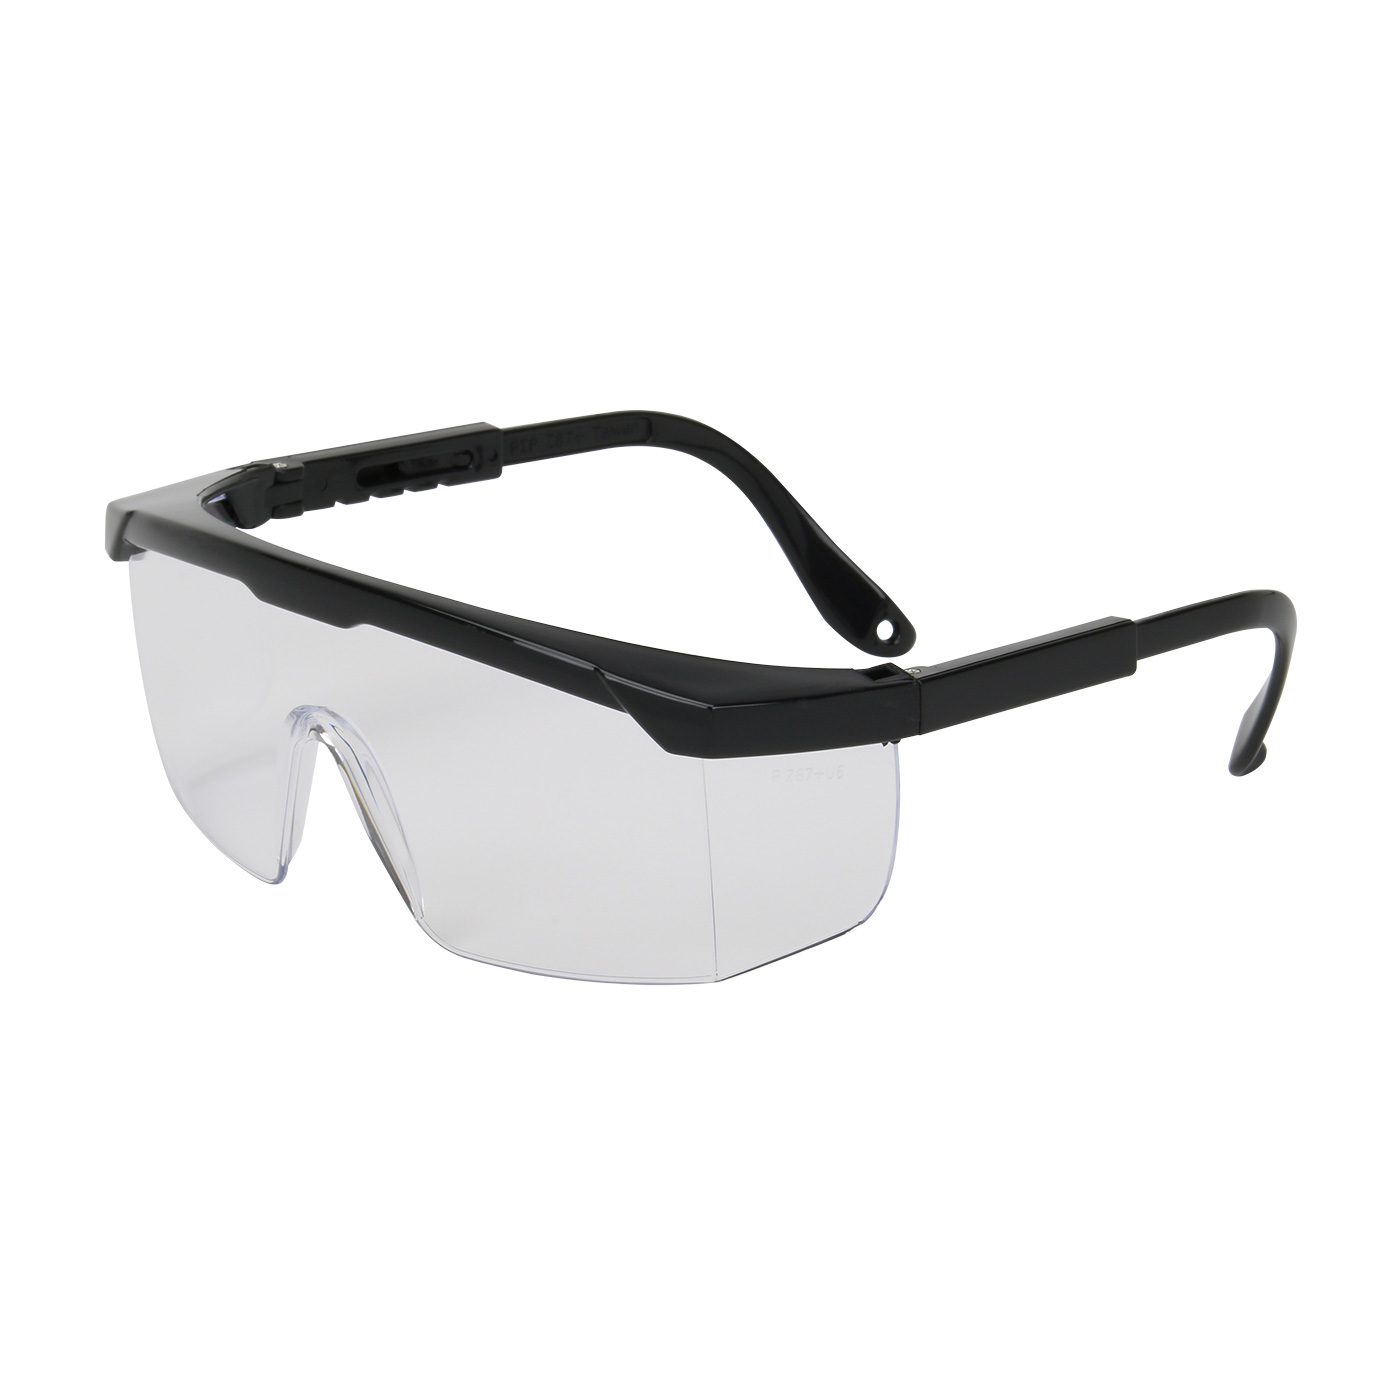 Semi-Rimless Safety Glasses with Black Frame, Clear Lens and Anti-Scratch Coating, Black, OS